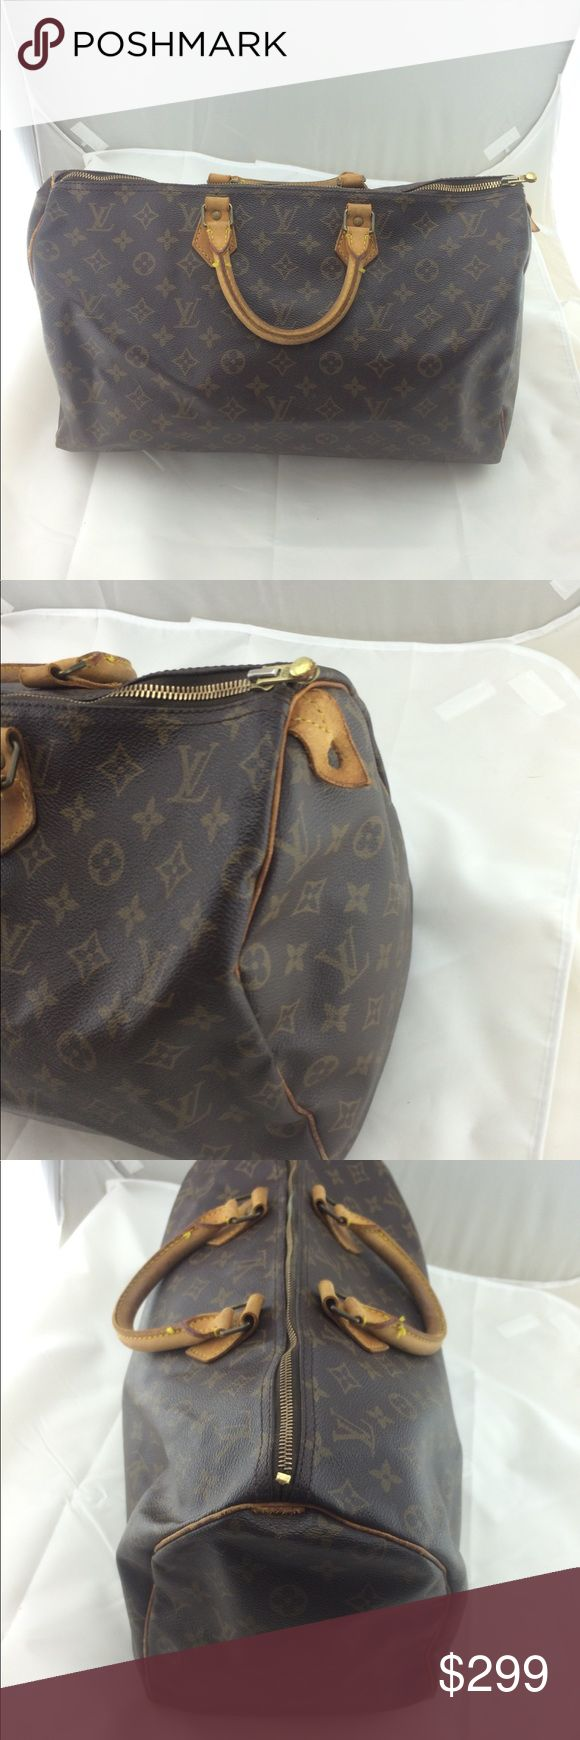 Authentic Louis Vuitton speedy 40 Vintage bag in usable condition .100% authentic .price is low and firm on posh .will ship next day Louis Vuitton Bags Totes